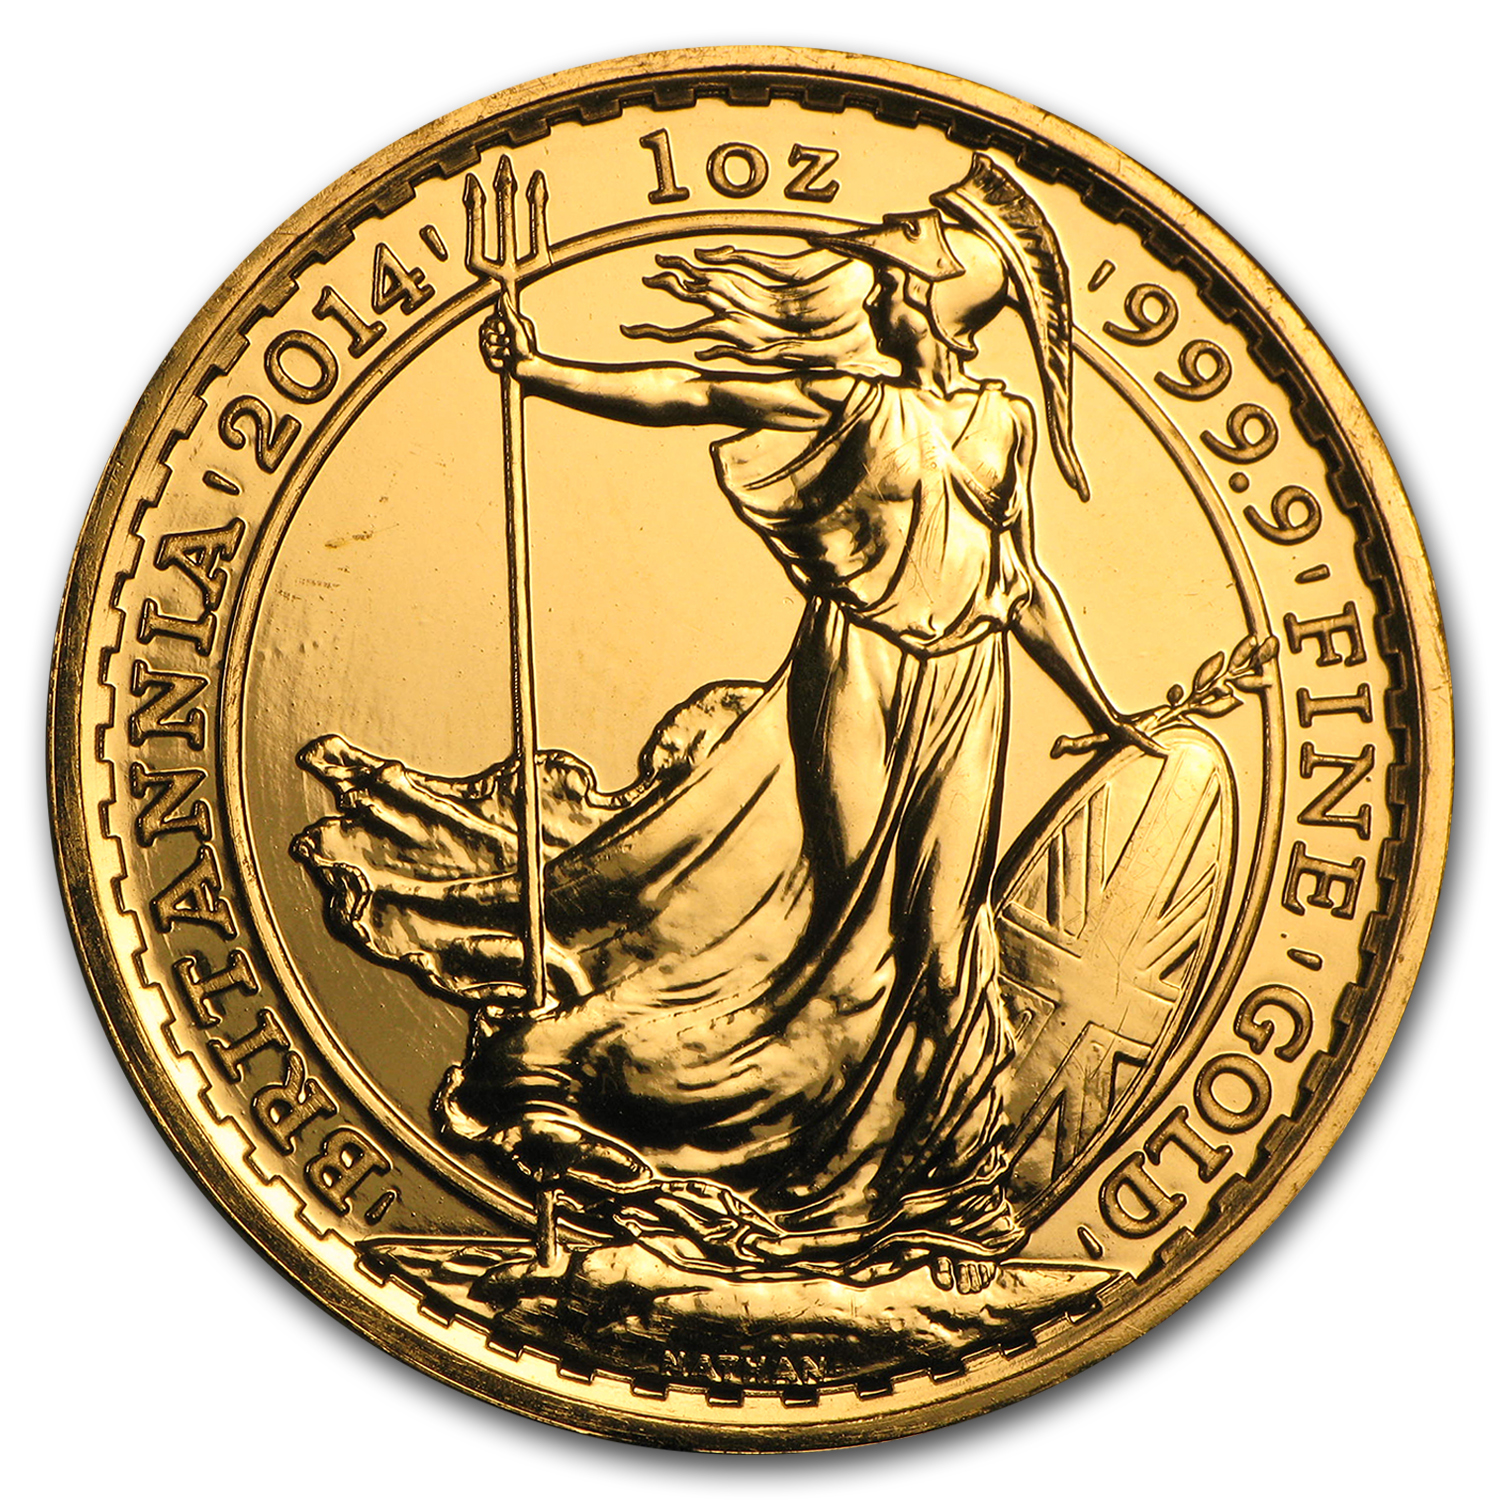 2014 Great Britain 1 oz Gold Britannia BU